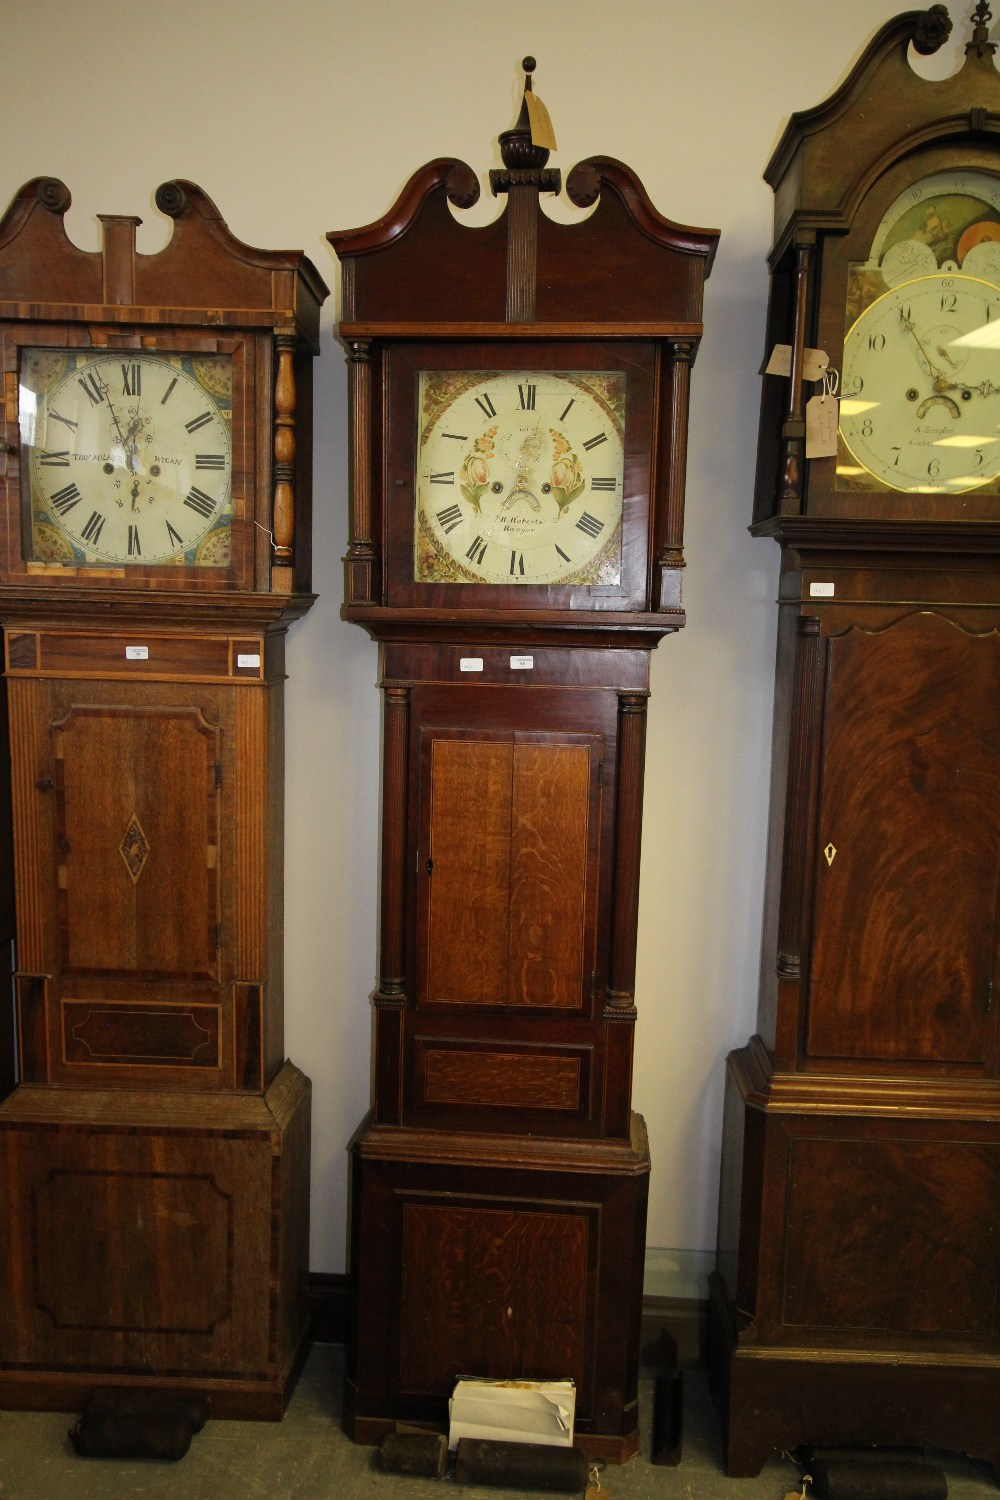 Lot 58 - R Roberts - Banger, Oak & Mahogany Long Case Clock 8 Day